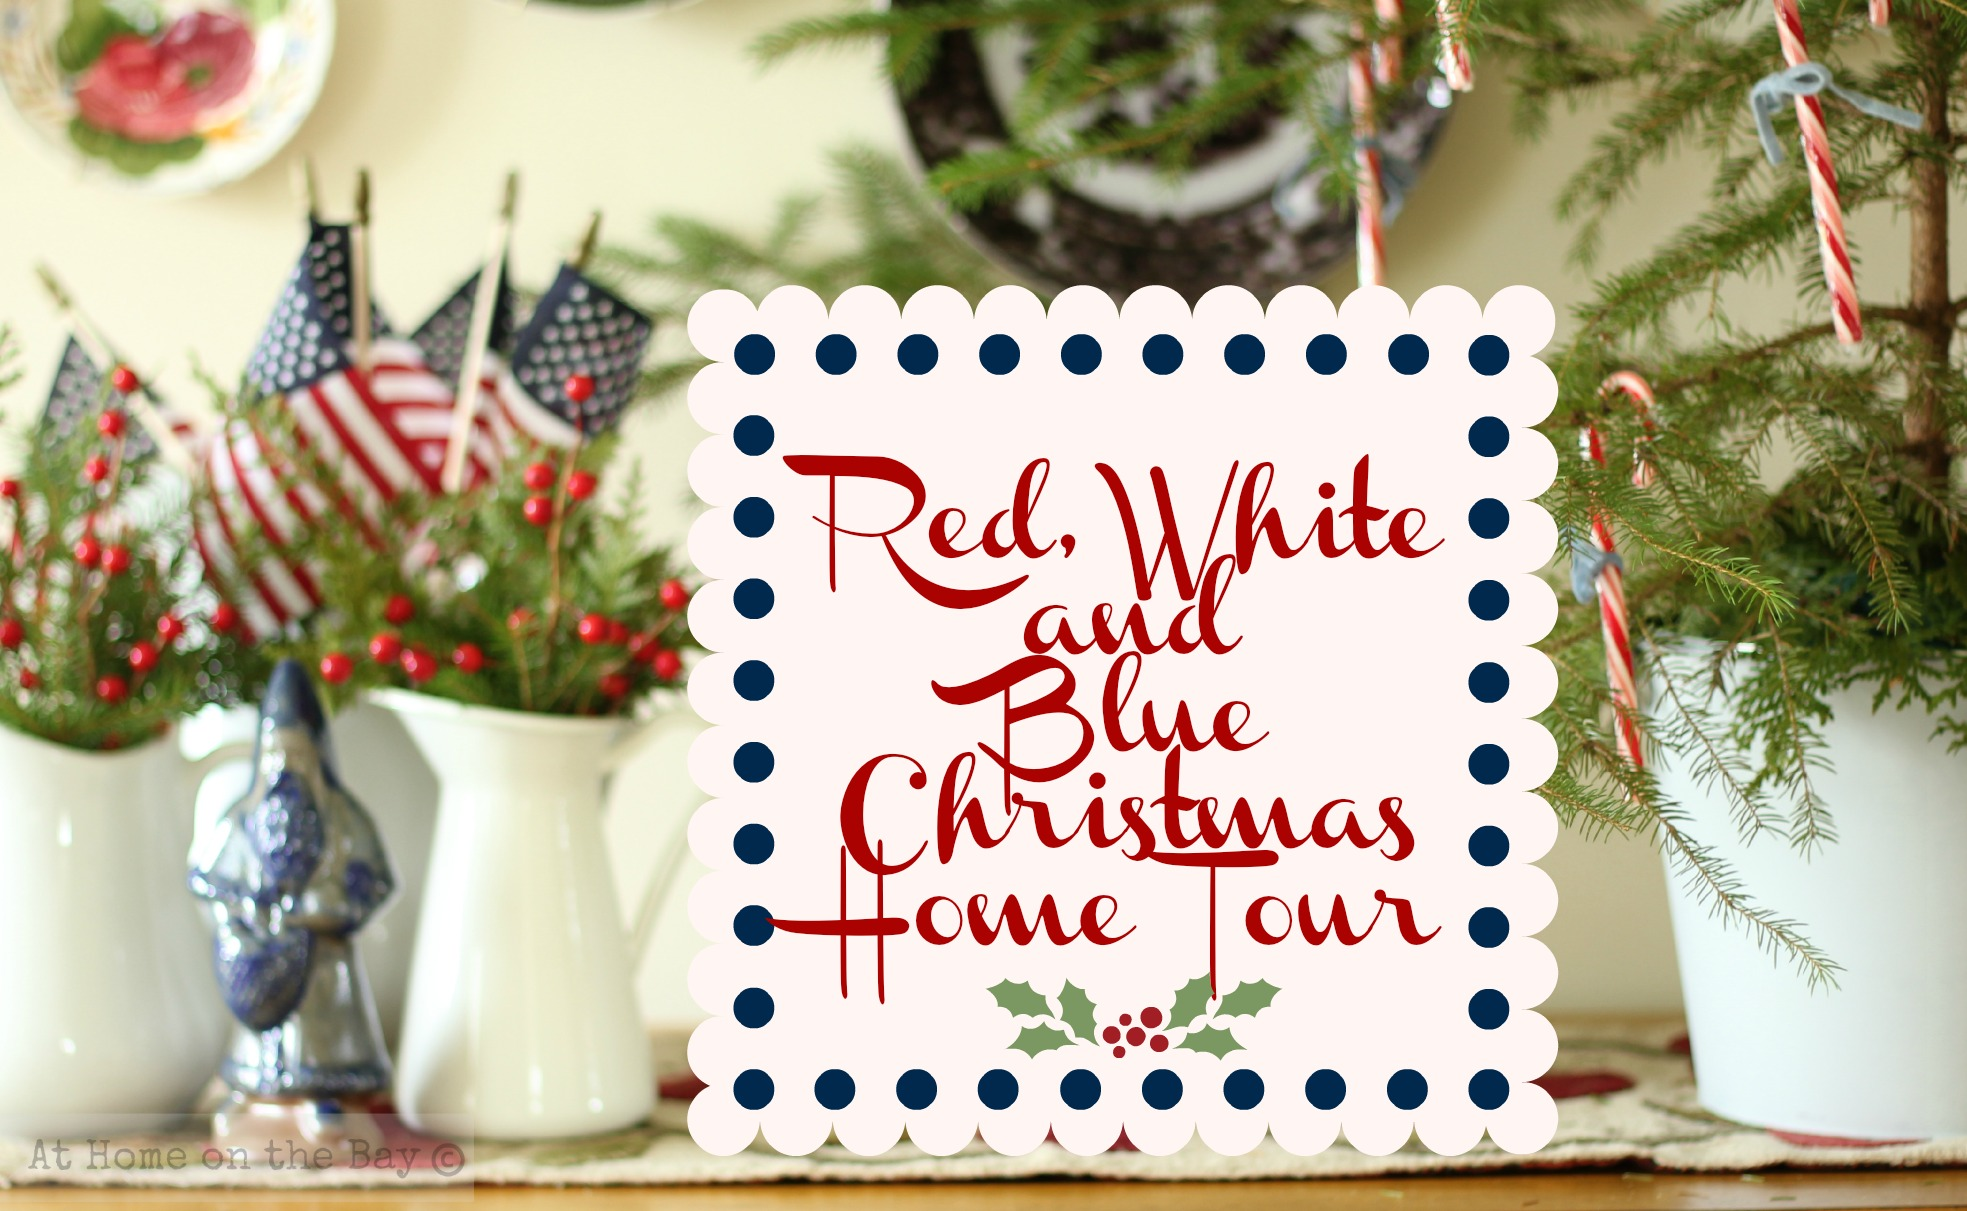 Red white and blue christmas ornaments - Red White And Blue Christmas Ornaments 52